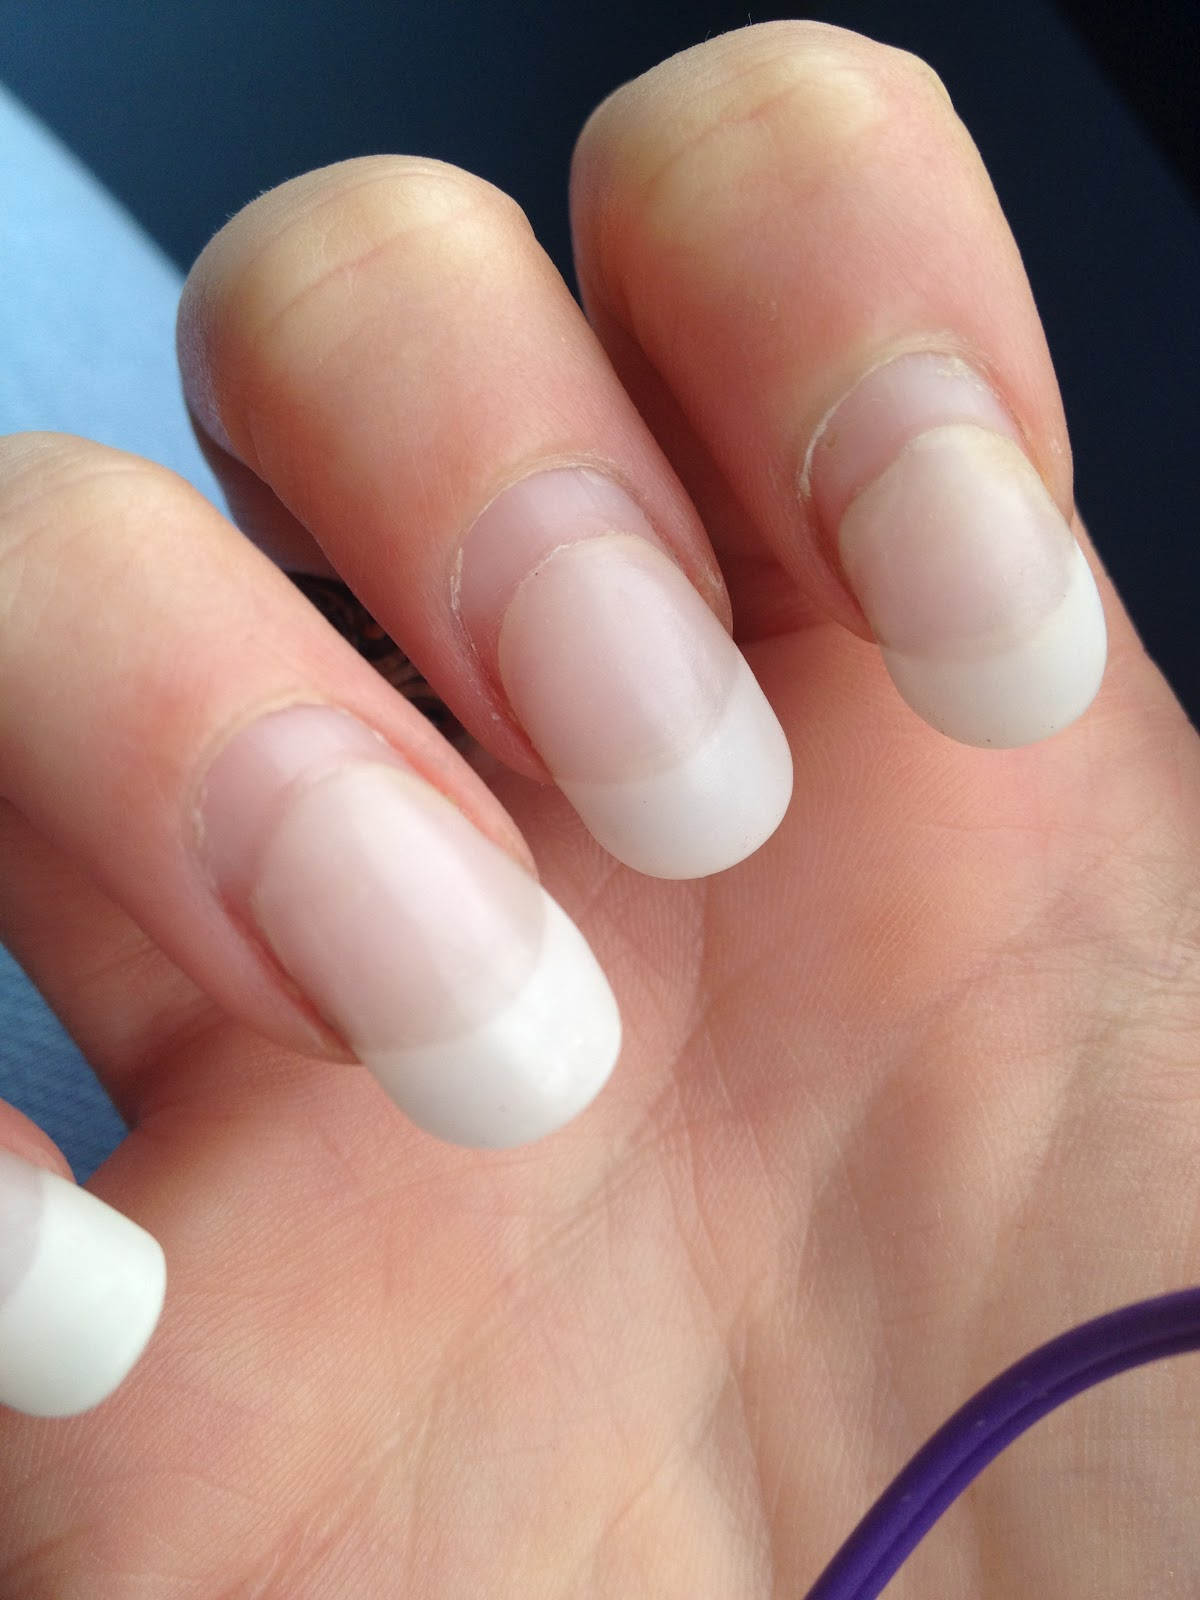 How Long Will My Nails Last? – Mission Nails